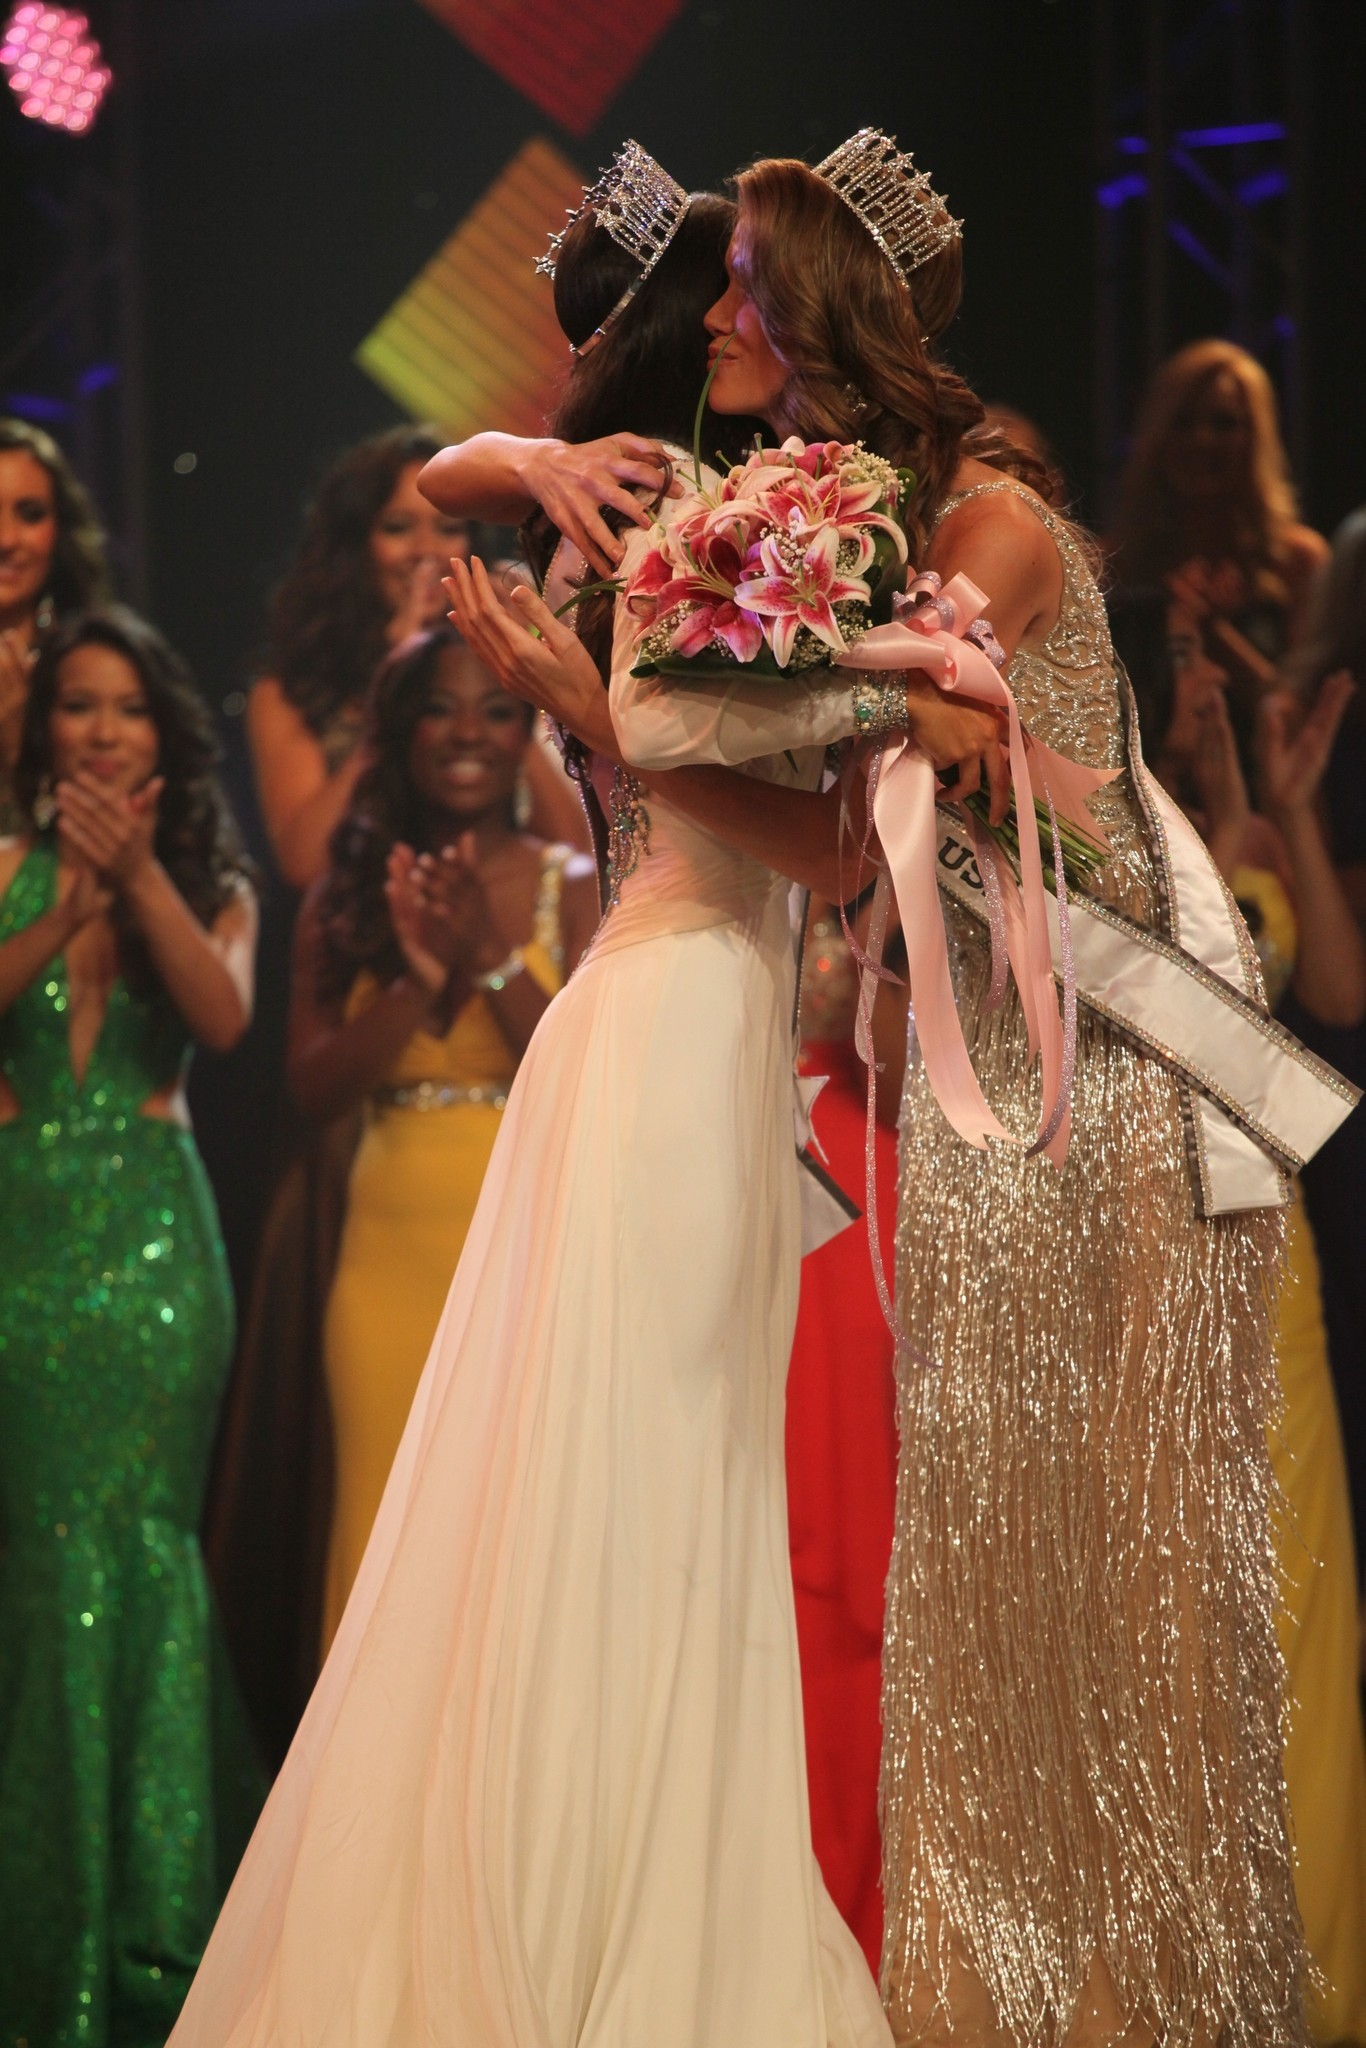 Miss Florida USA Pageant - Miss Florida USA 2015